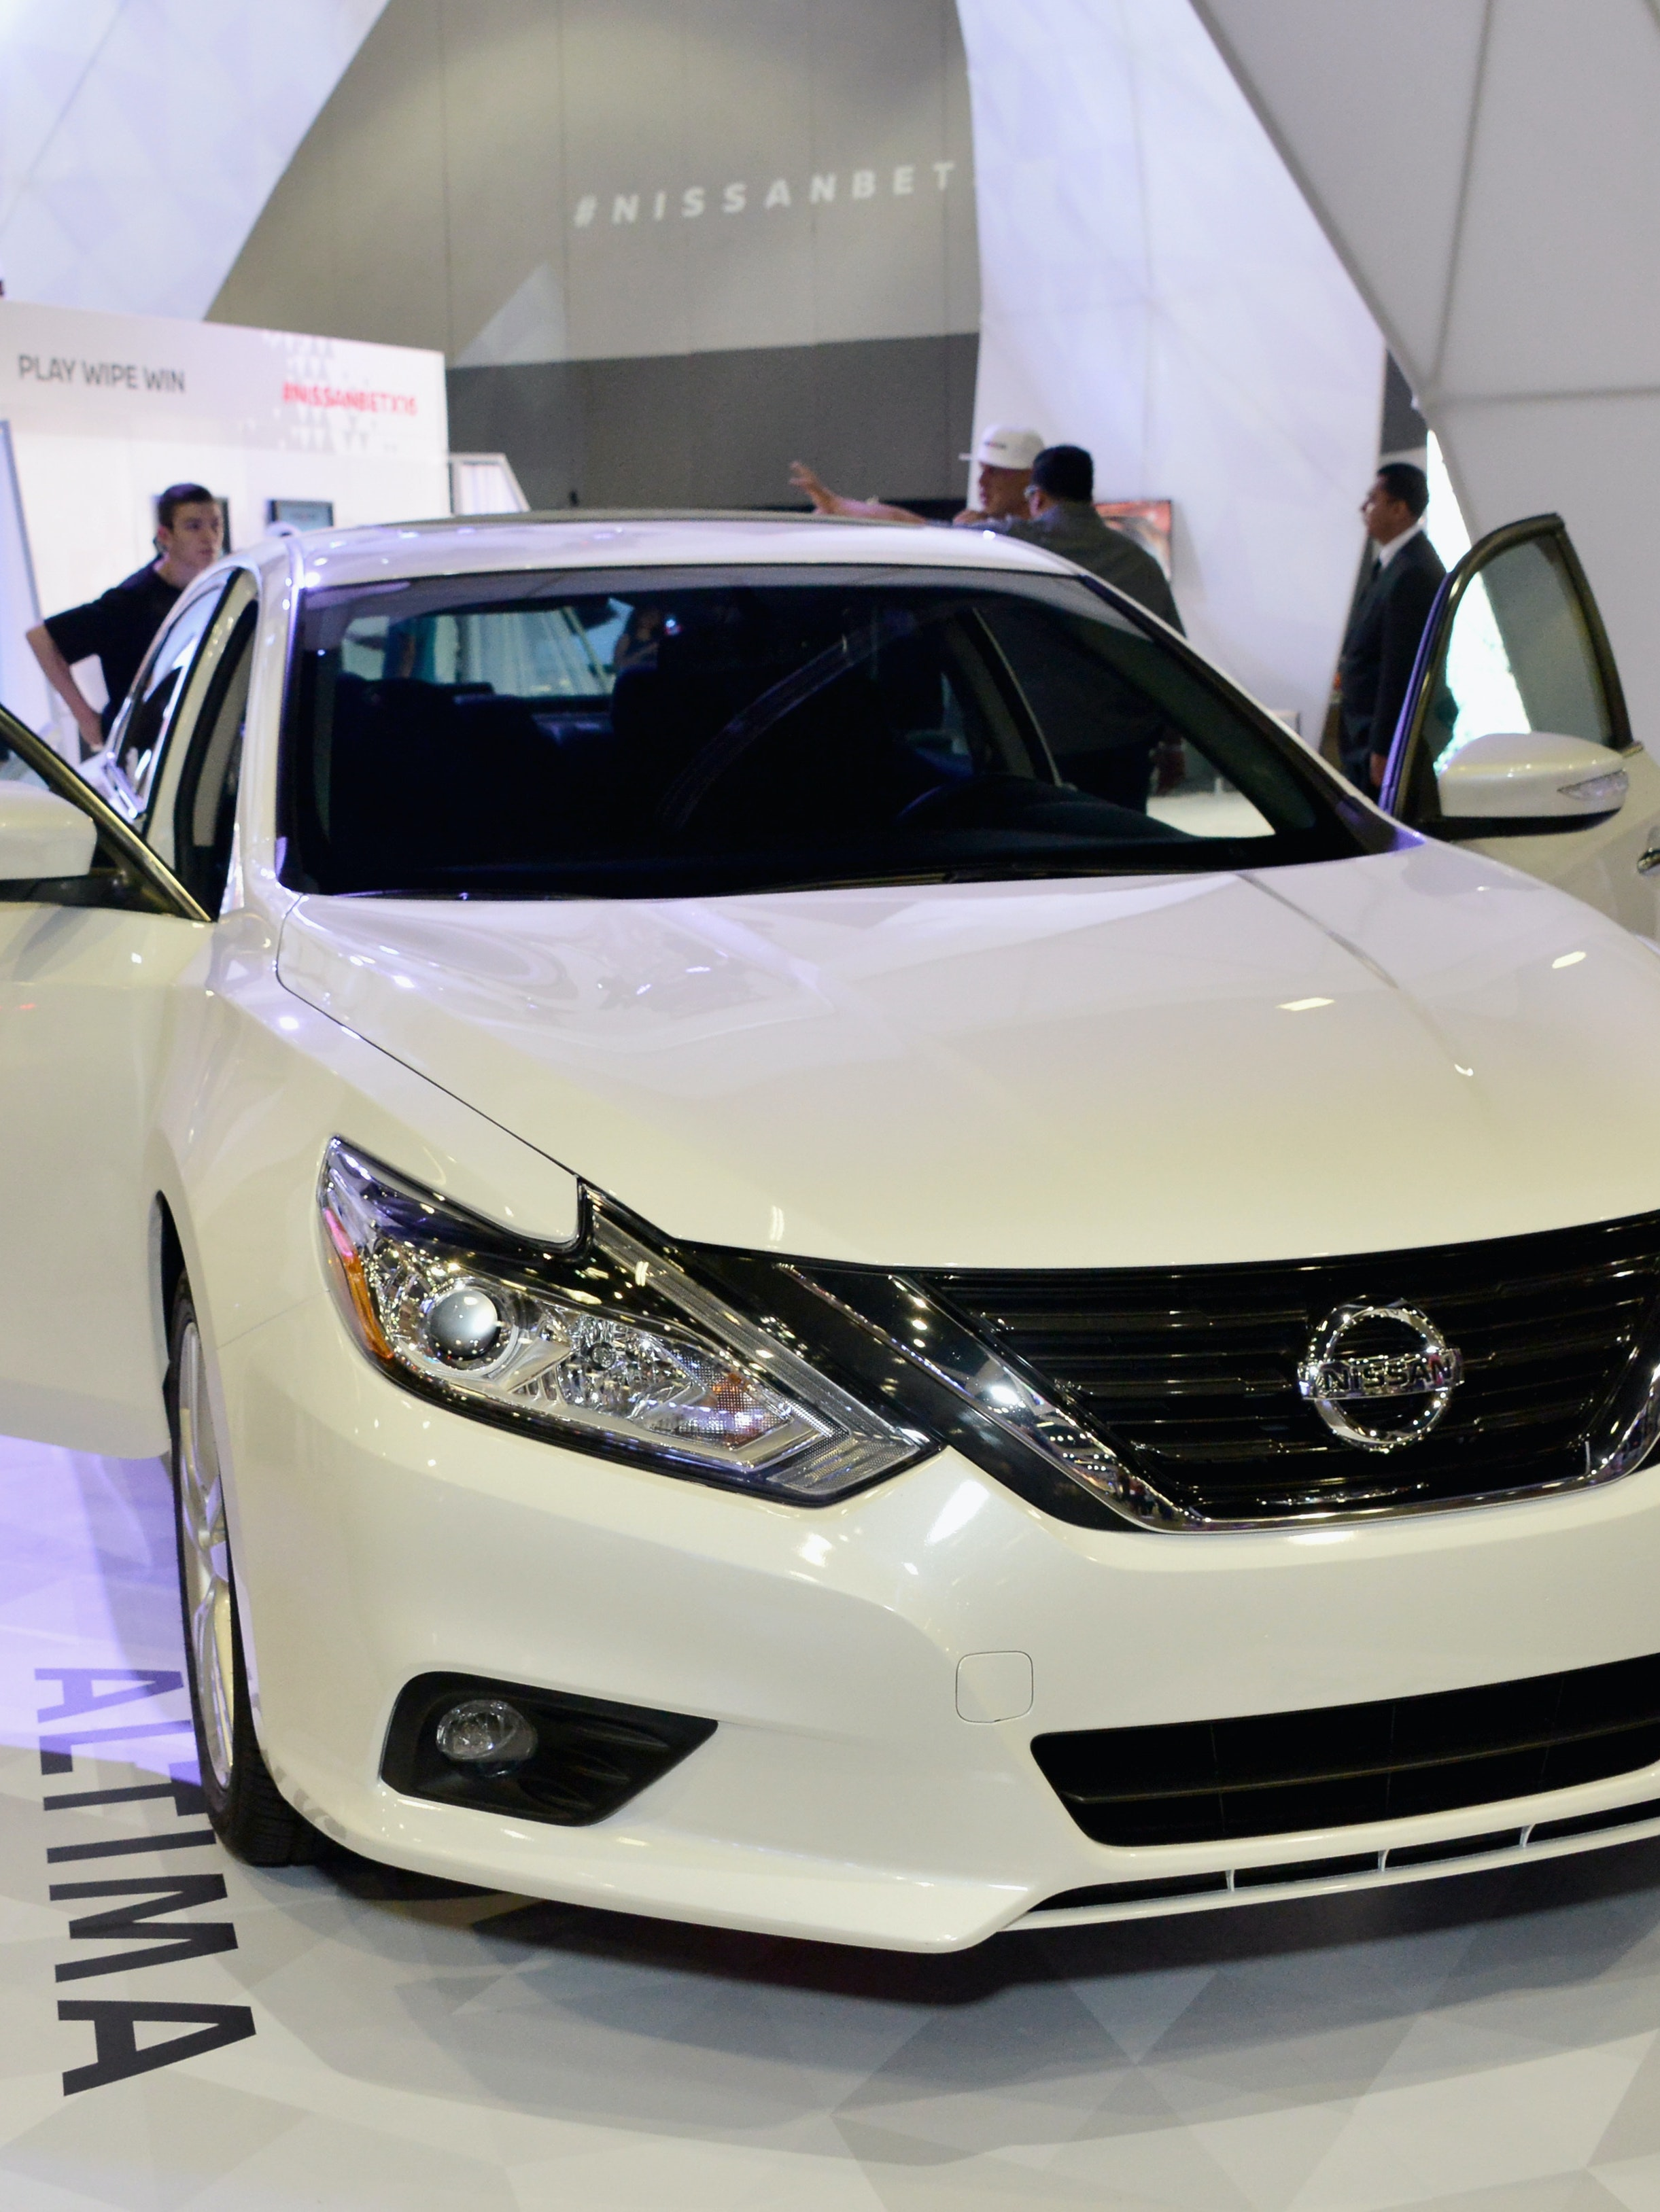 LOS ANGELES, CA - JUNE 26:  Nissan Maxima is displayed at the Fan Fest during the 2016 BET Experience on June 26, 2016 in Los Angeles, California.  (Photo by Araya Diaz/Getty Images for BET)